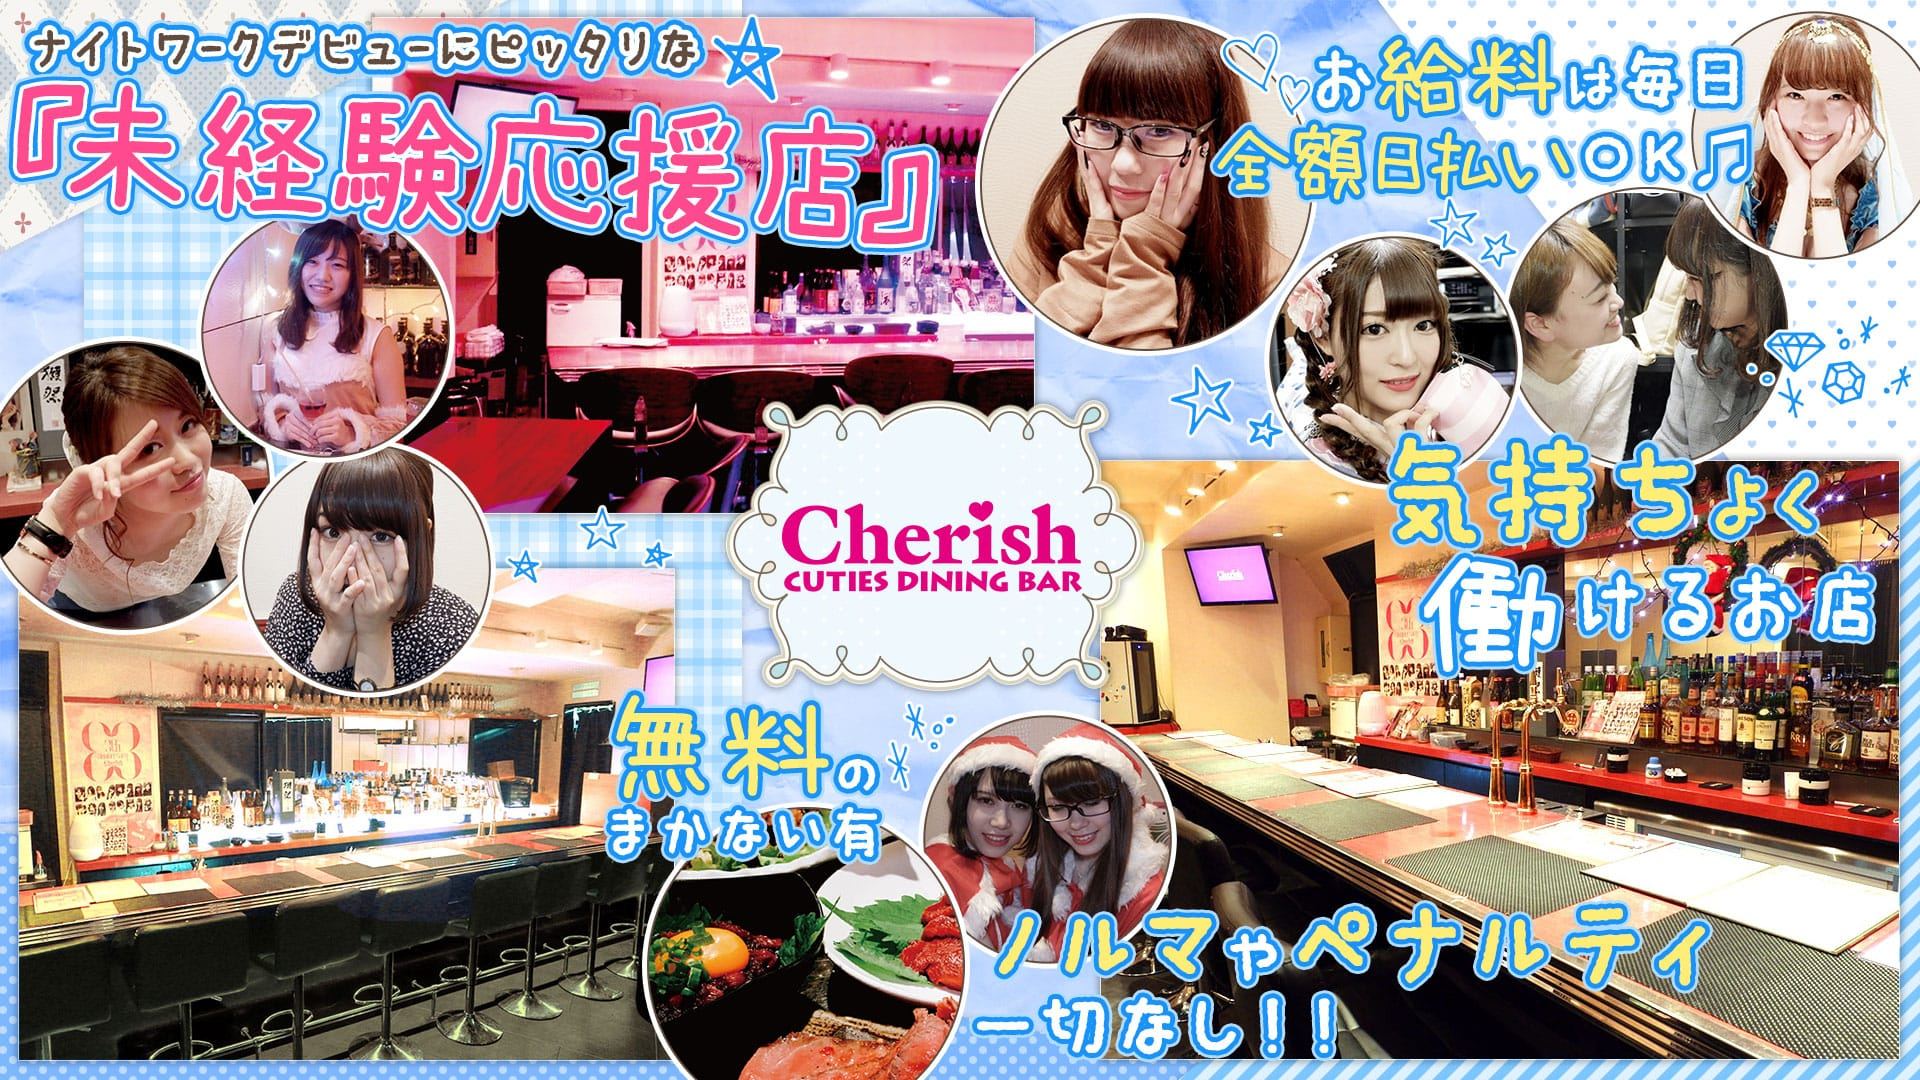 CUTIES DINING BAR Cherish<チェリッシュ2号店> 池袋 ガールズバー TOP画像